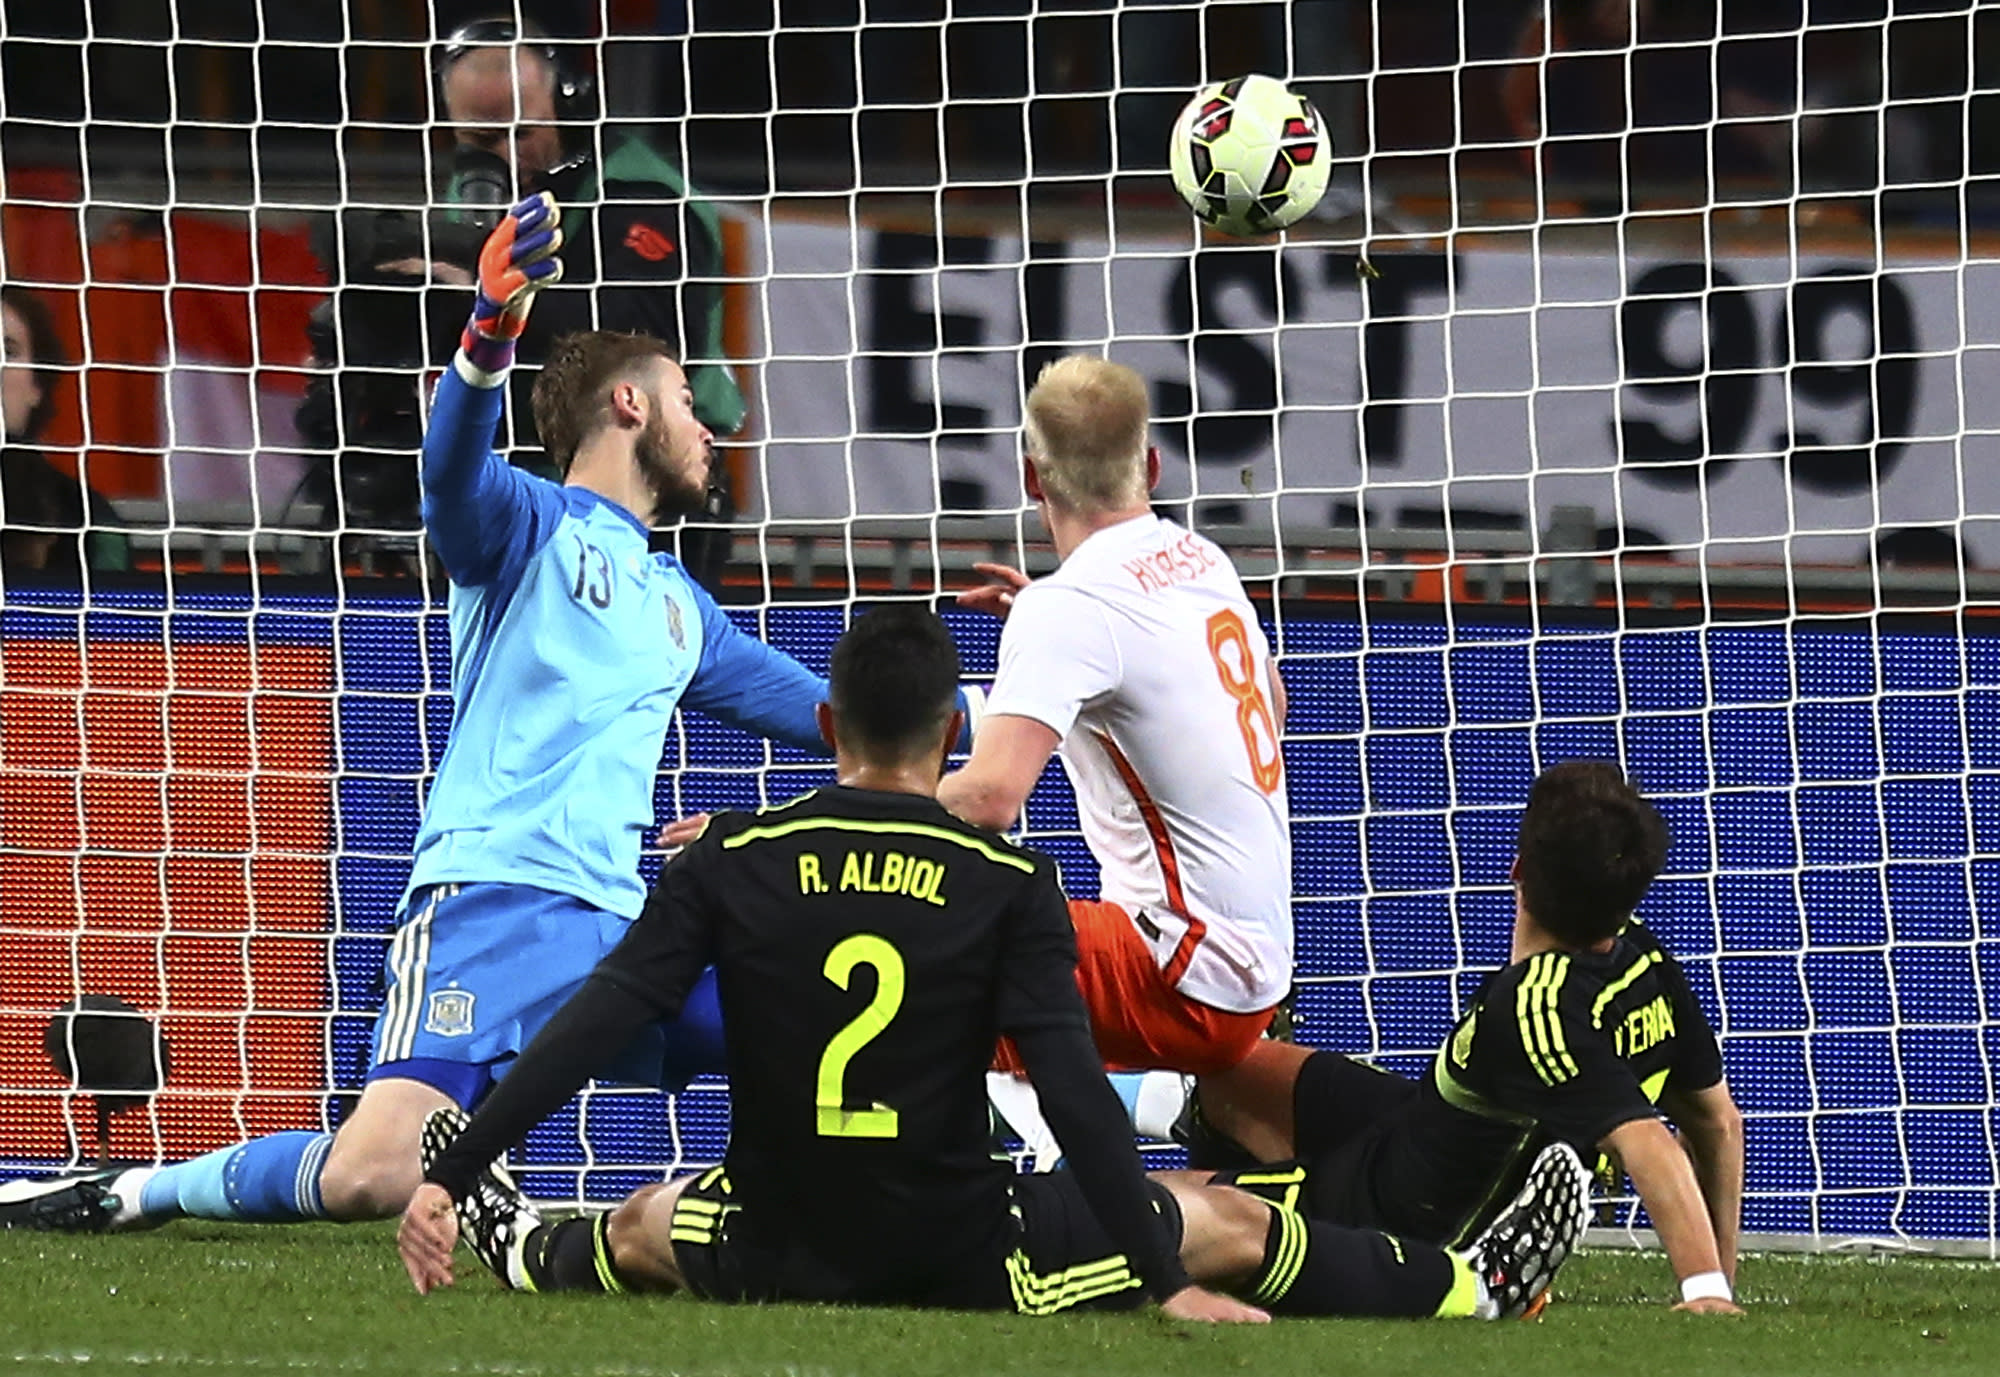 Netherlands beats 2-0 to relieve pressure on Guus Hiddink